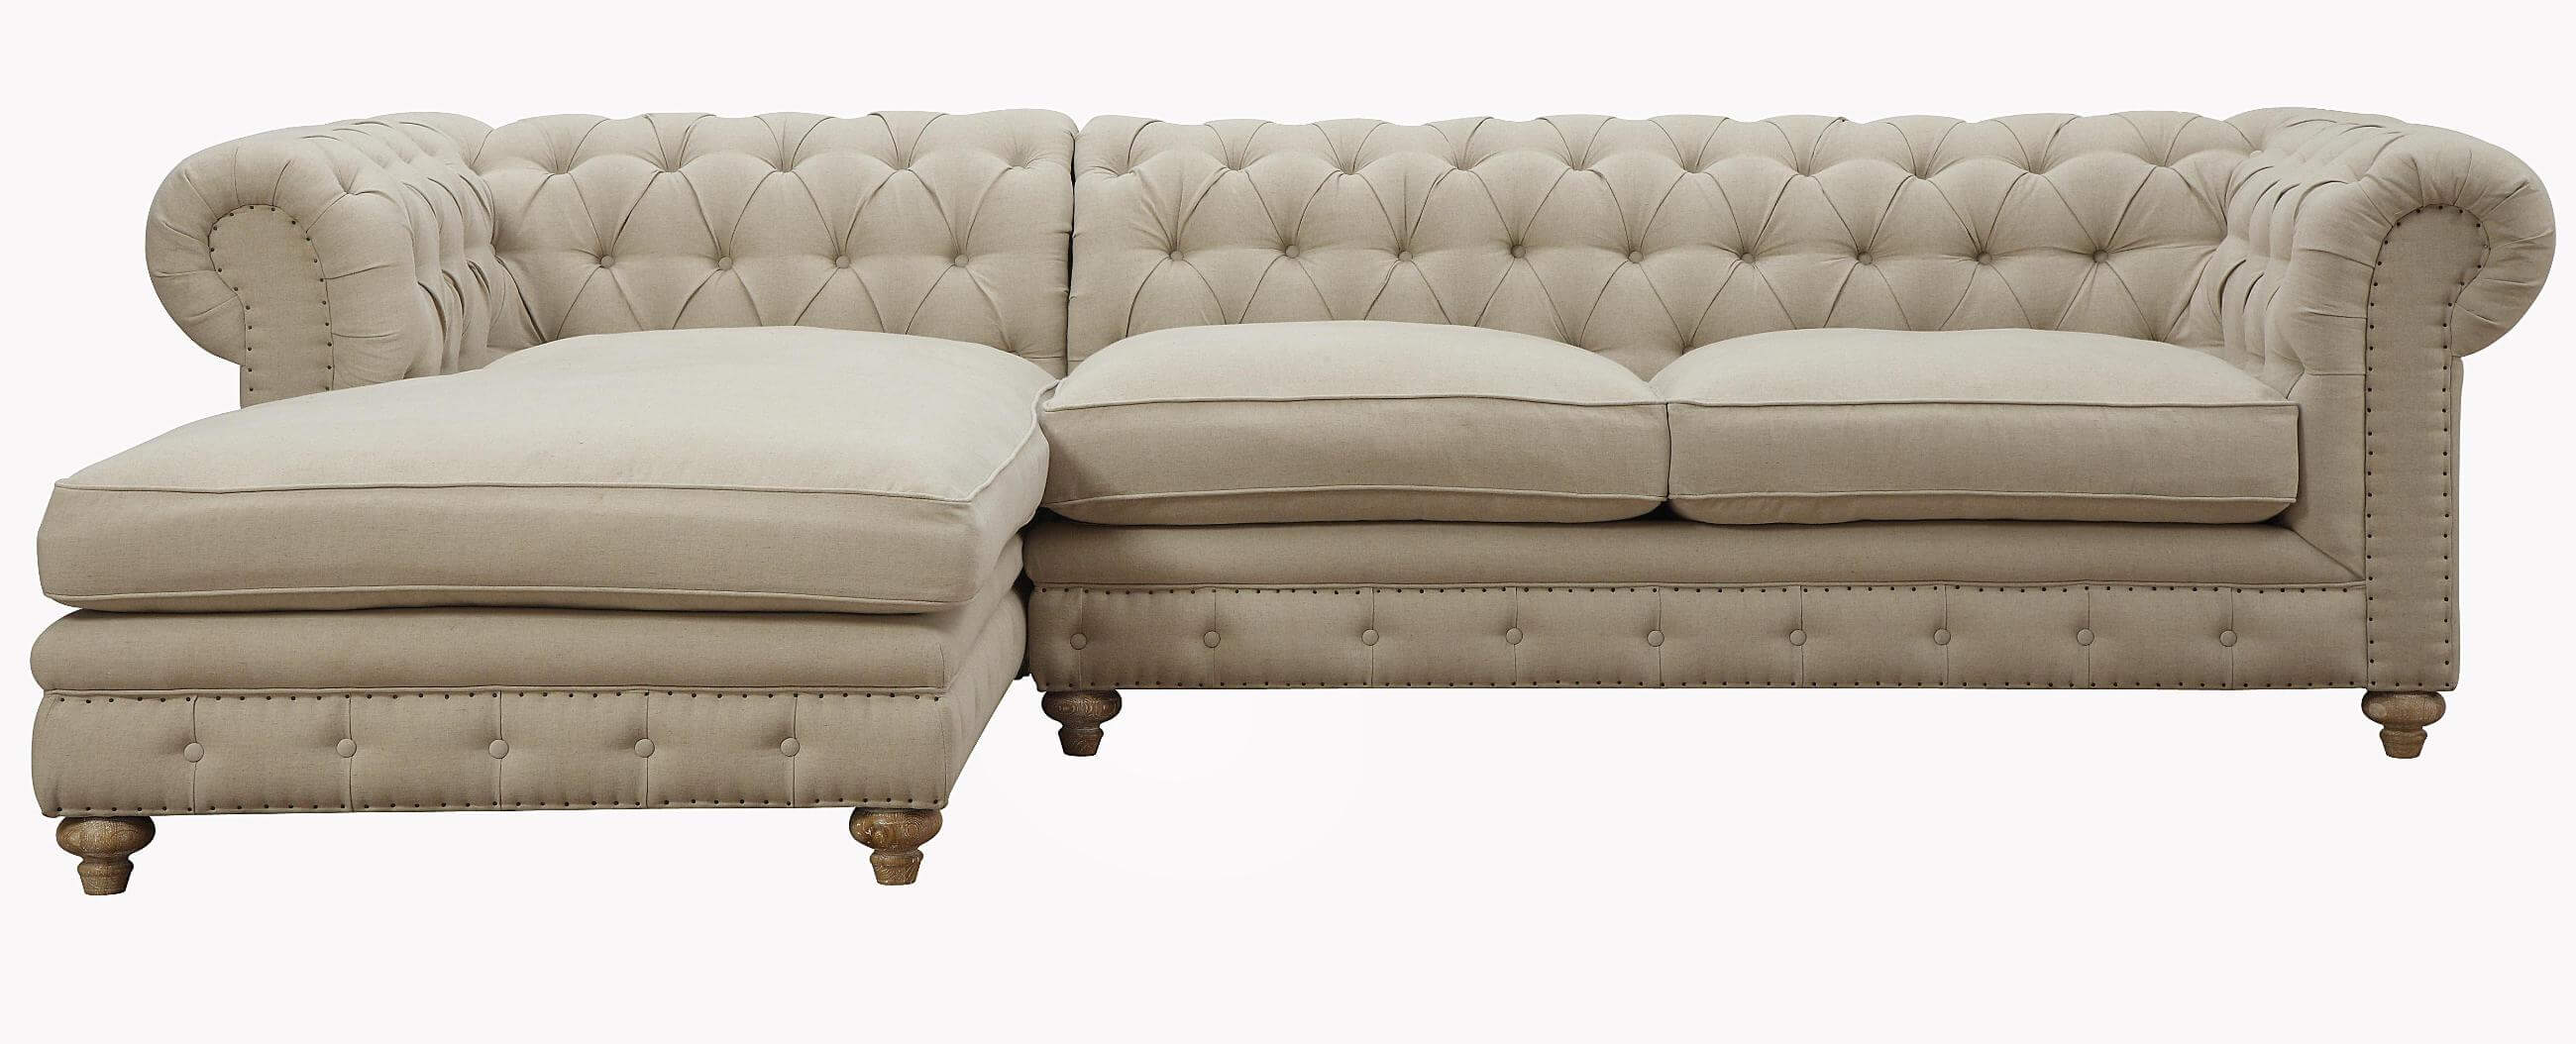 Oxford Beige Linen Sectional by TOV Furniture Buy line at Best